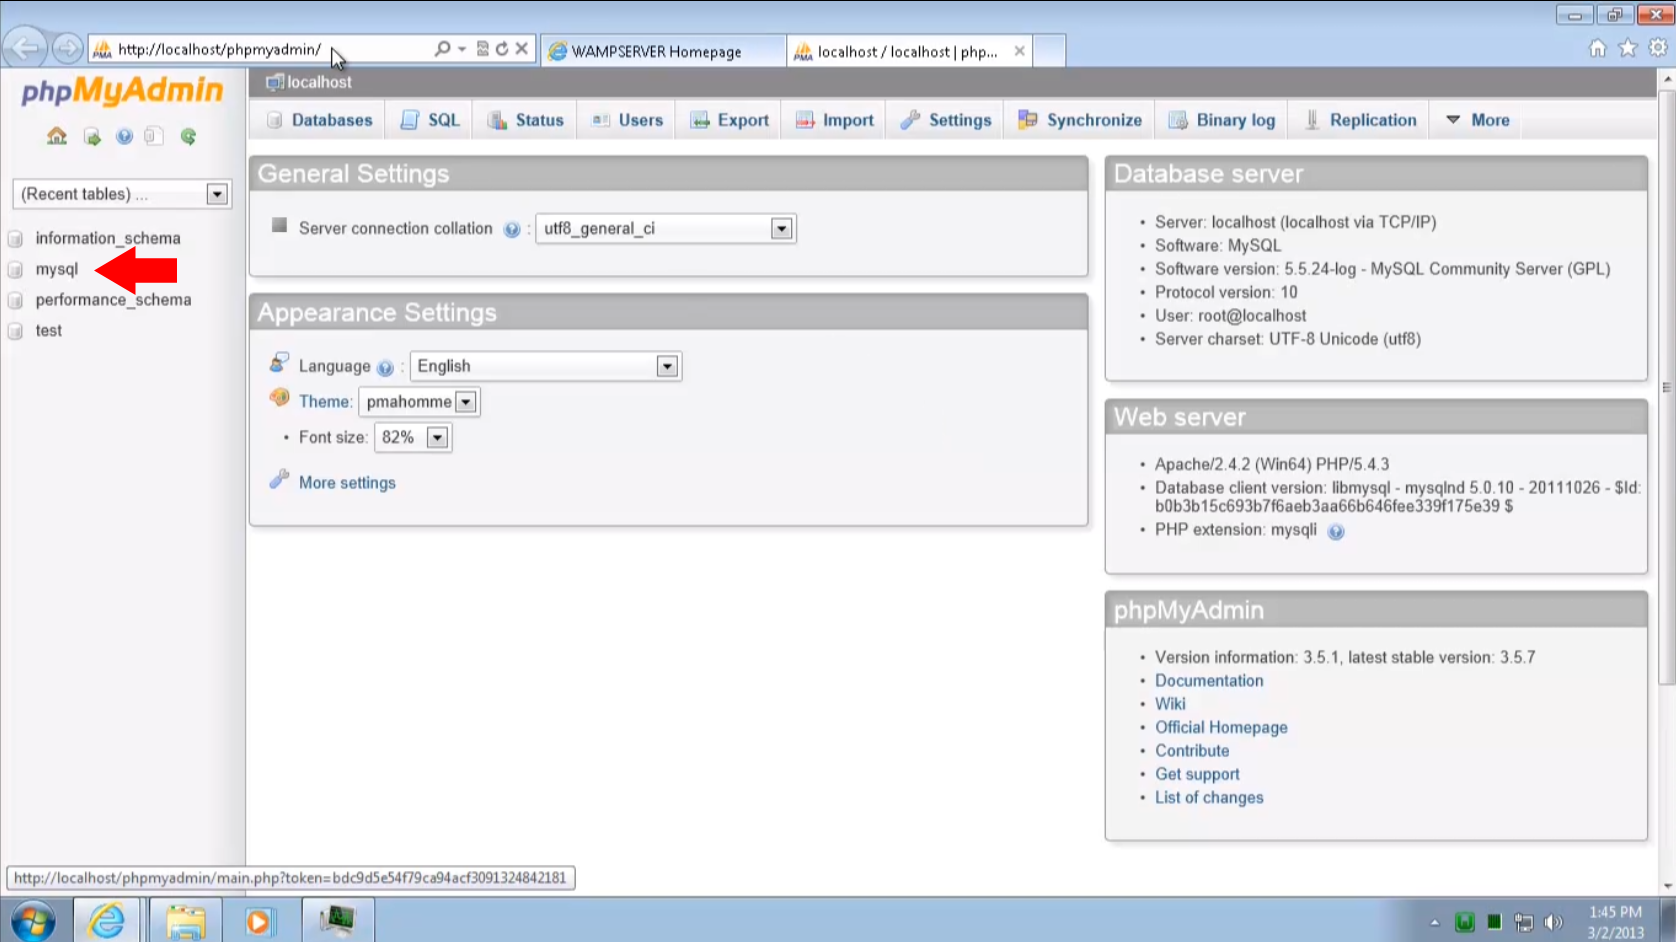 Install and Configure ownCloud Server on Windows 7 using Wamp